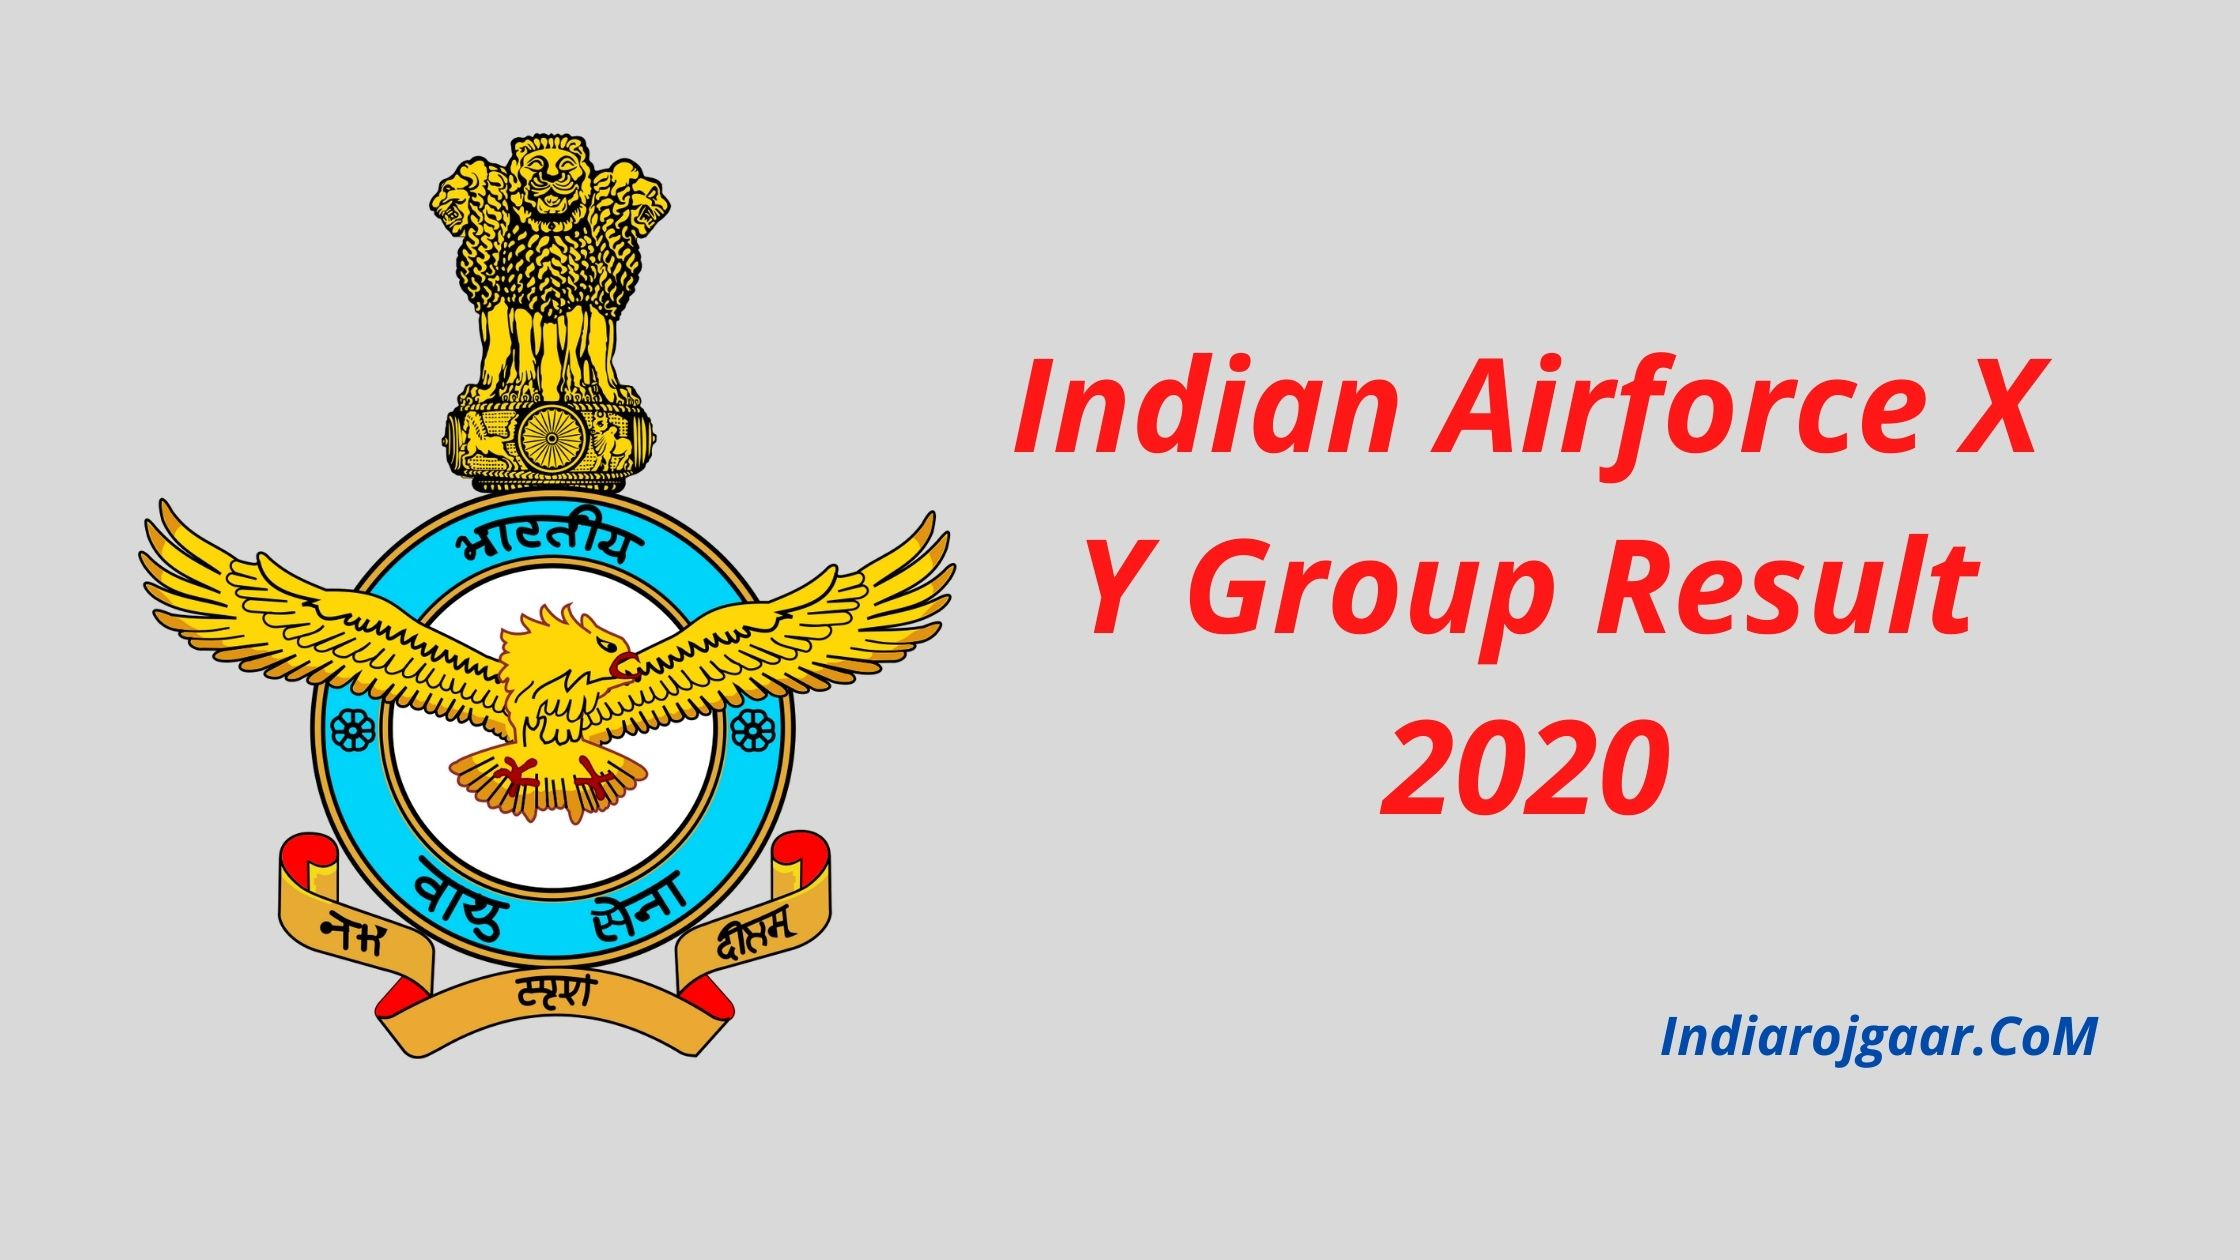 Indian Airforce X Y Group Result 2020